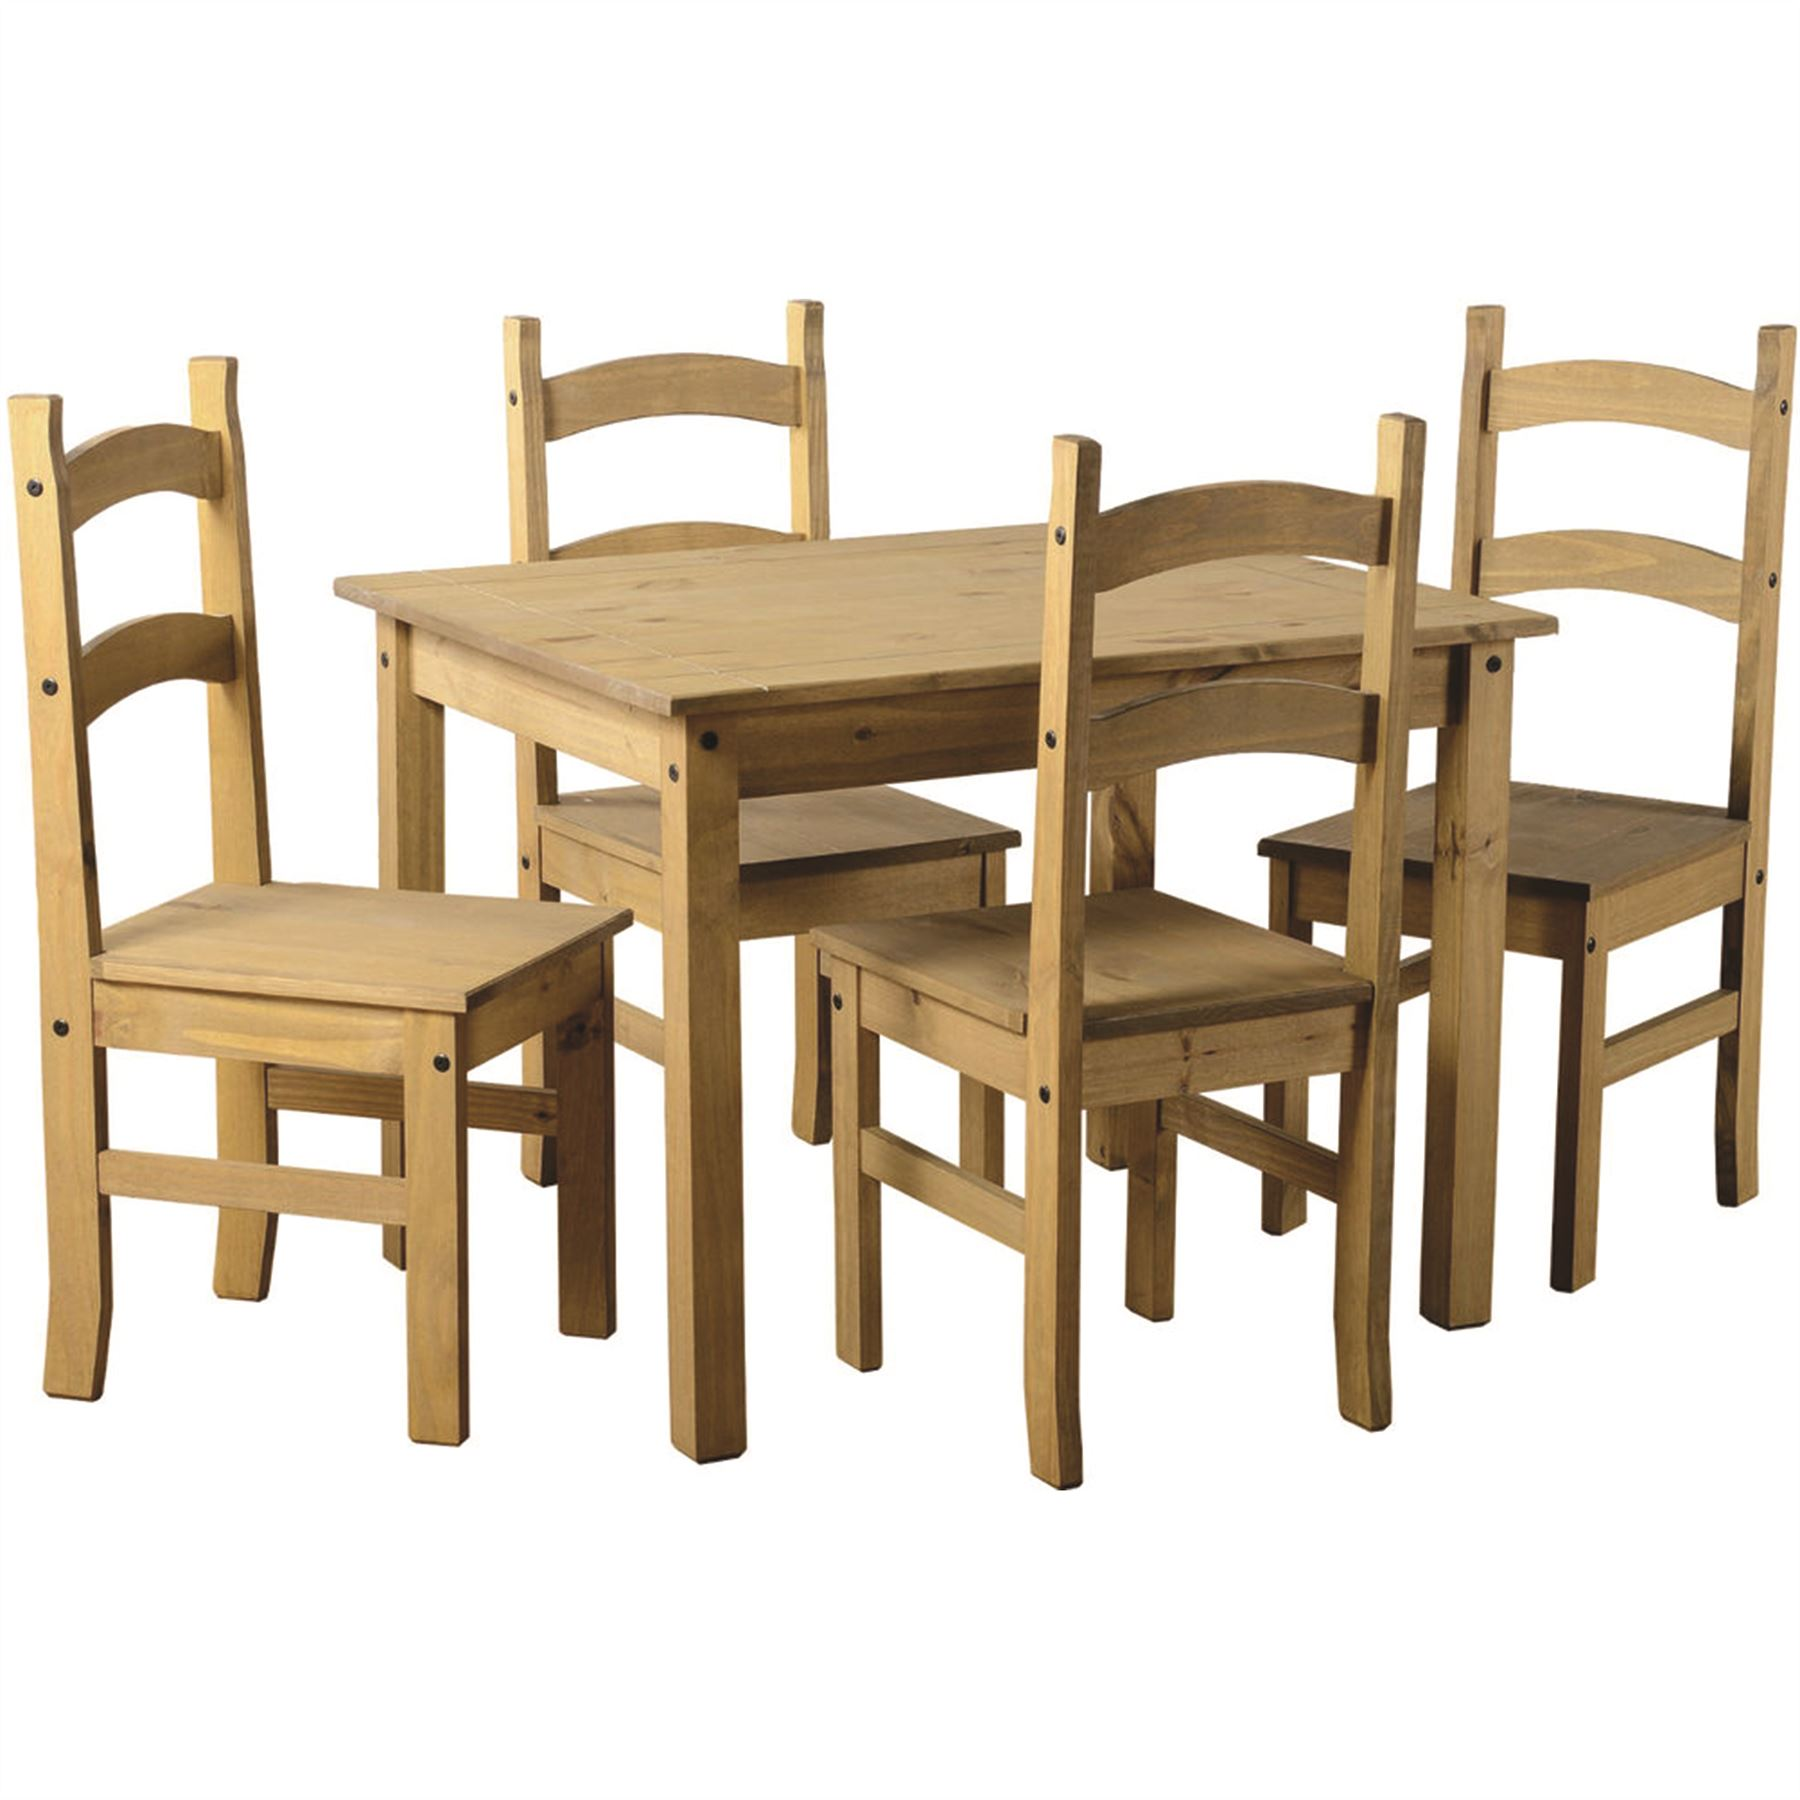 Corona 4 seater dining set chairs table solid waxed pine for Dining table set 4 seater